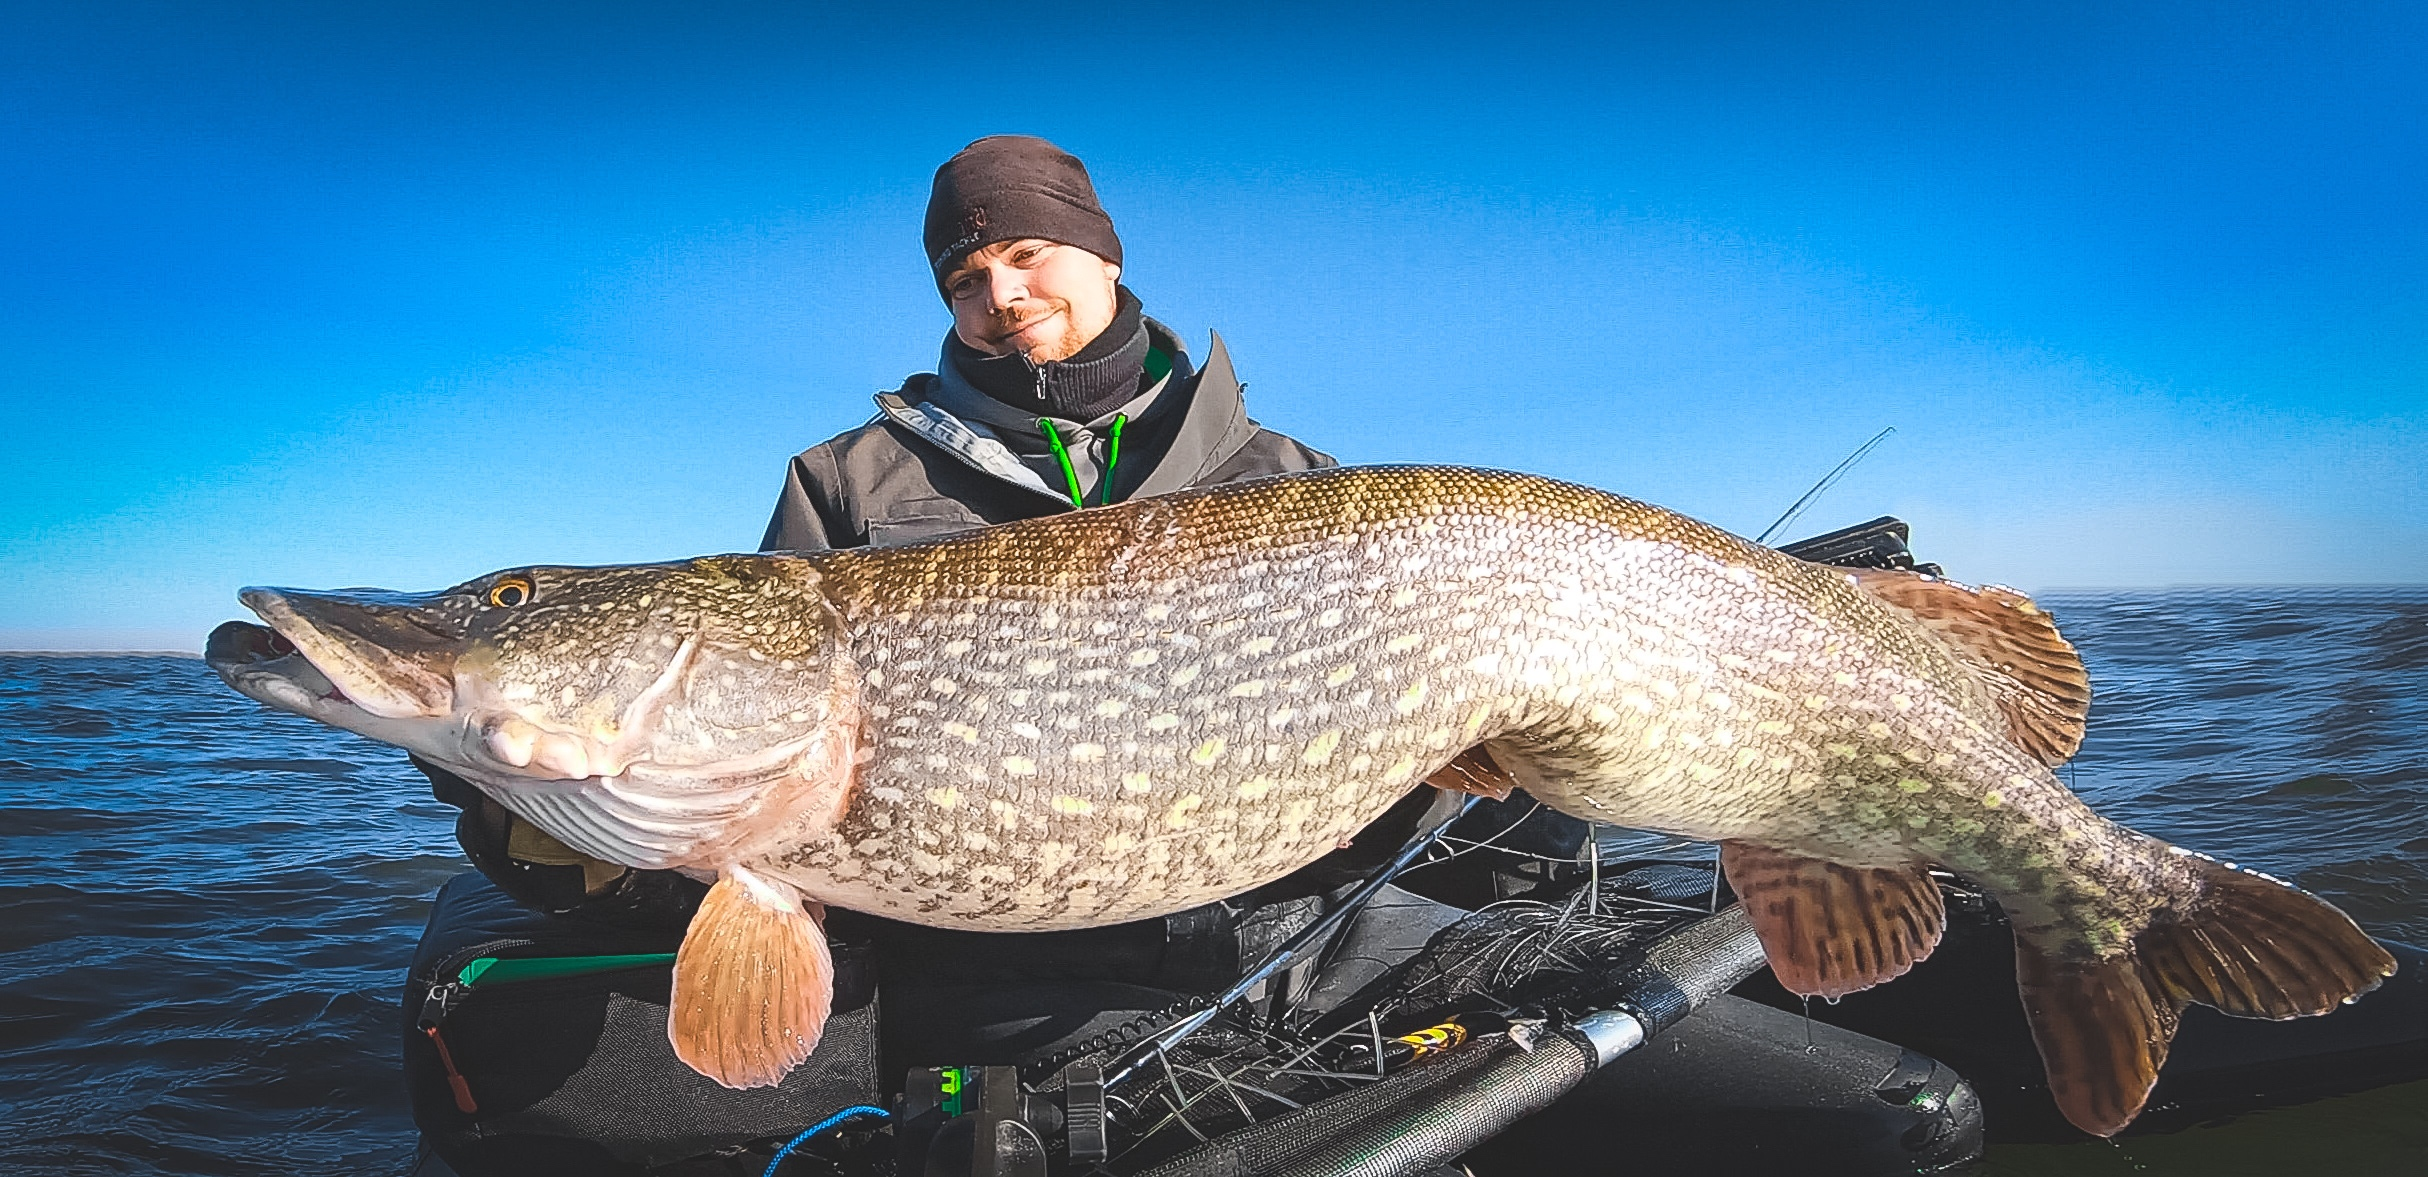 Giant Pike on the fly from the abu garcia beast bellyboat using the raymarine element 7 and navionics relief shading on a platinum+ map